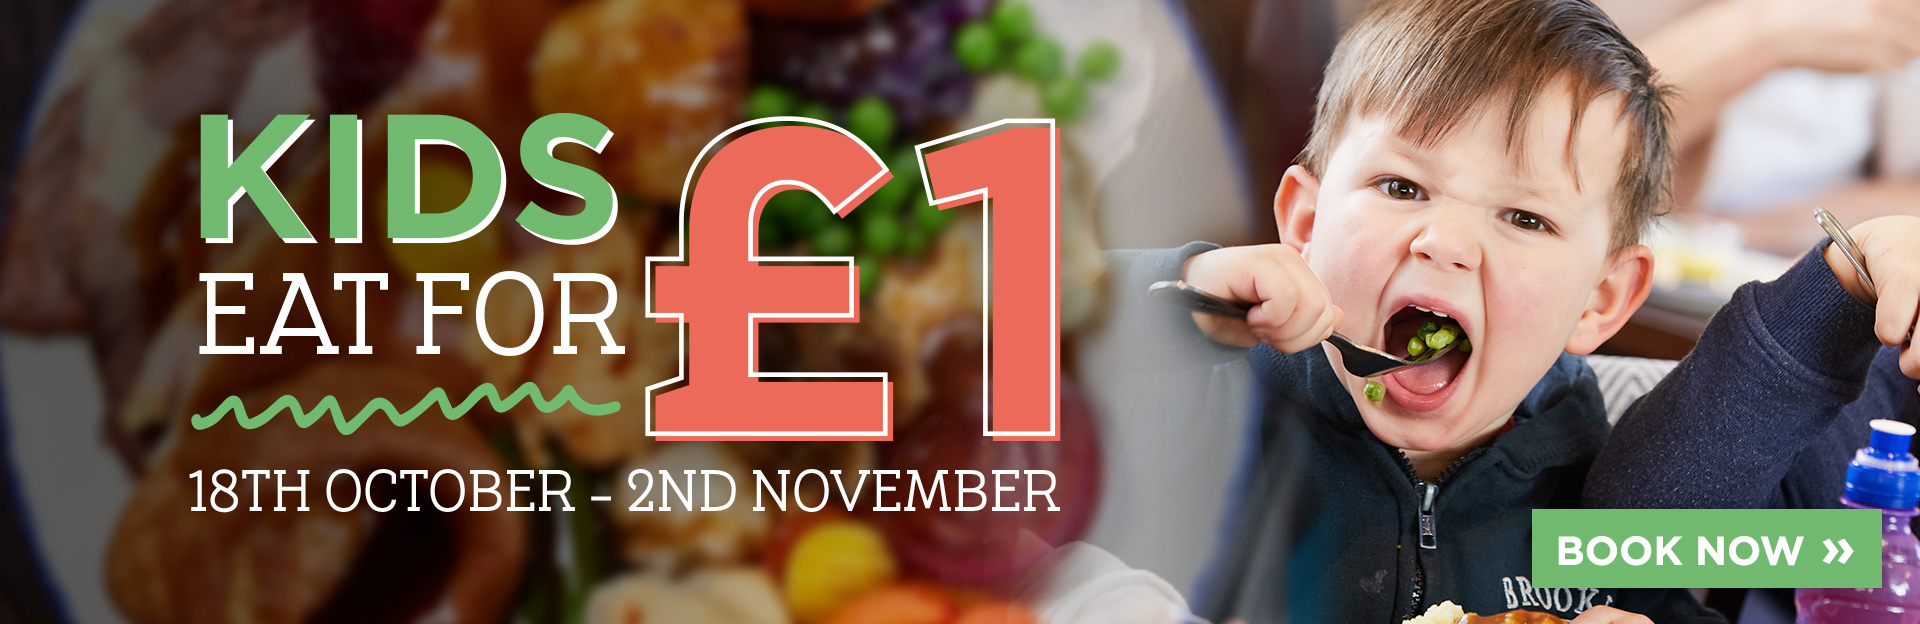 Kids eat for £1 at The Radford Bank Inn